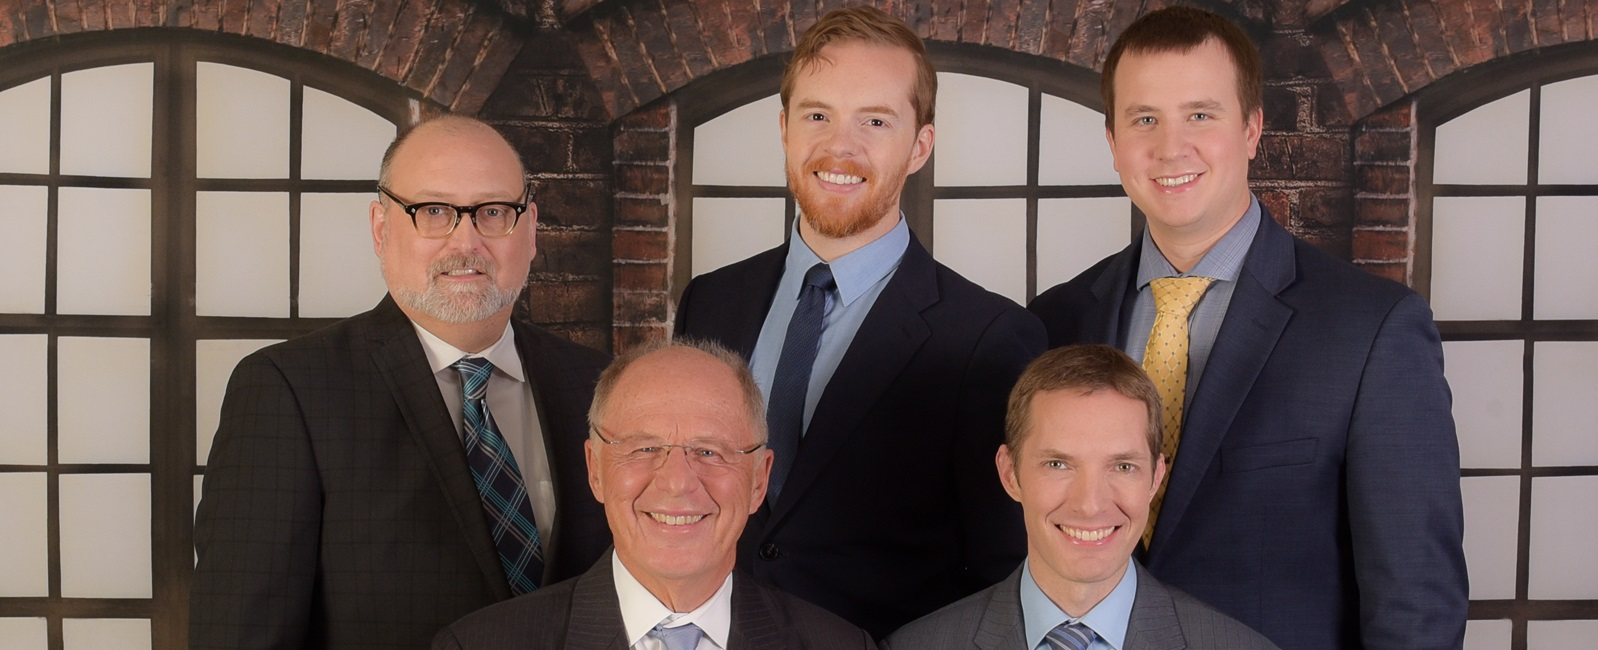 Walker & Walker Law Minnesota Bankruptcy Law Attorney Team Photo